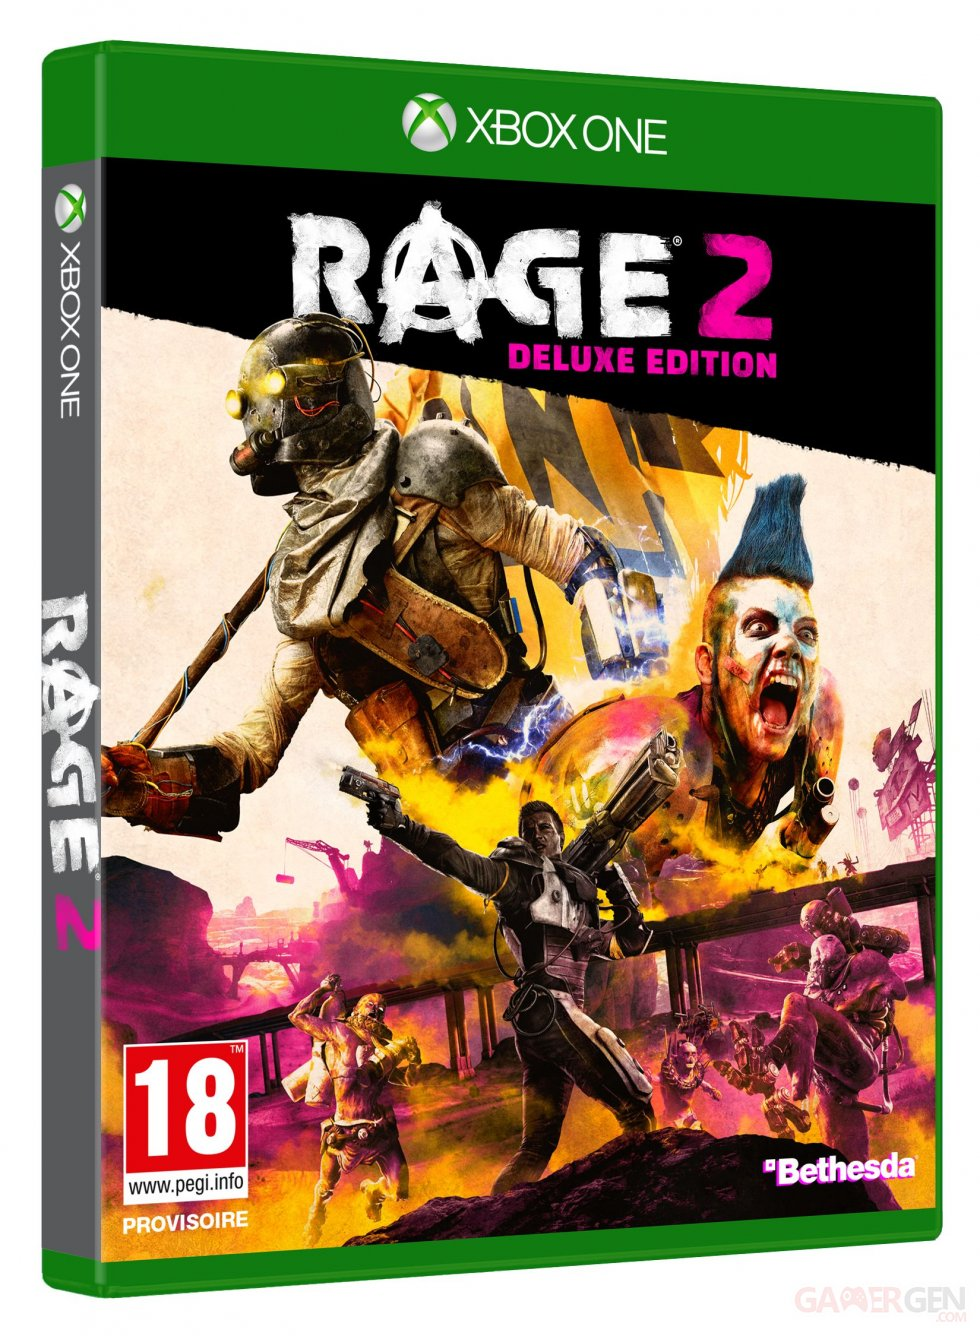 RAGE-2-jaquette-Deluxe-Edition-Xbox-One-bis-11-06-2018